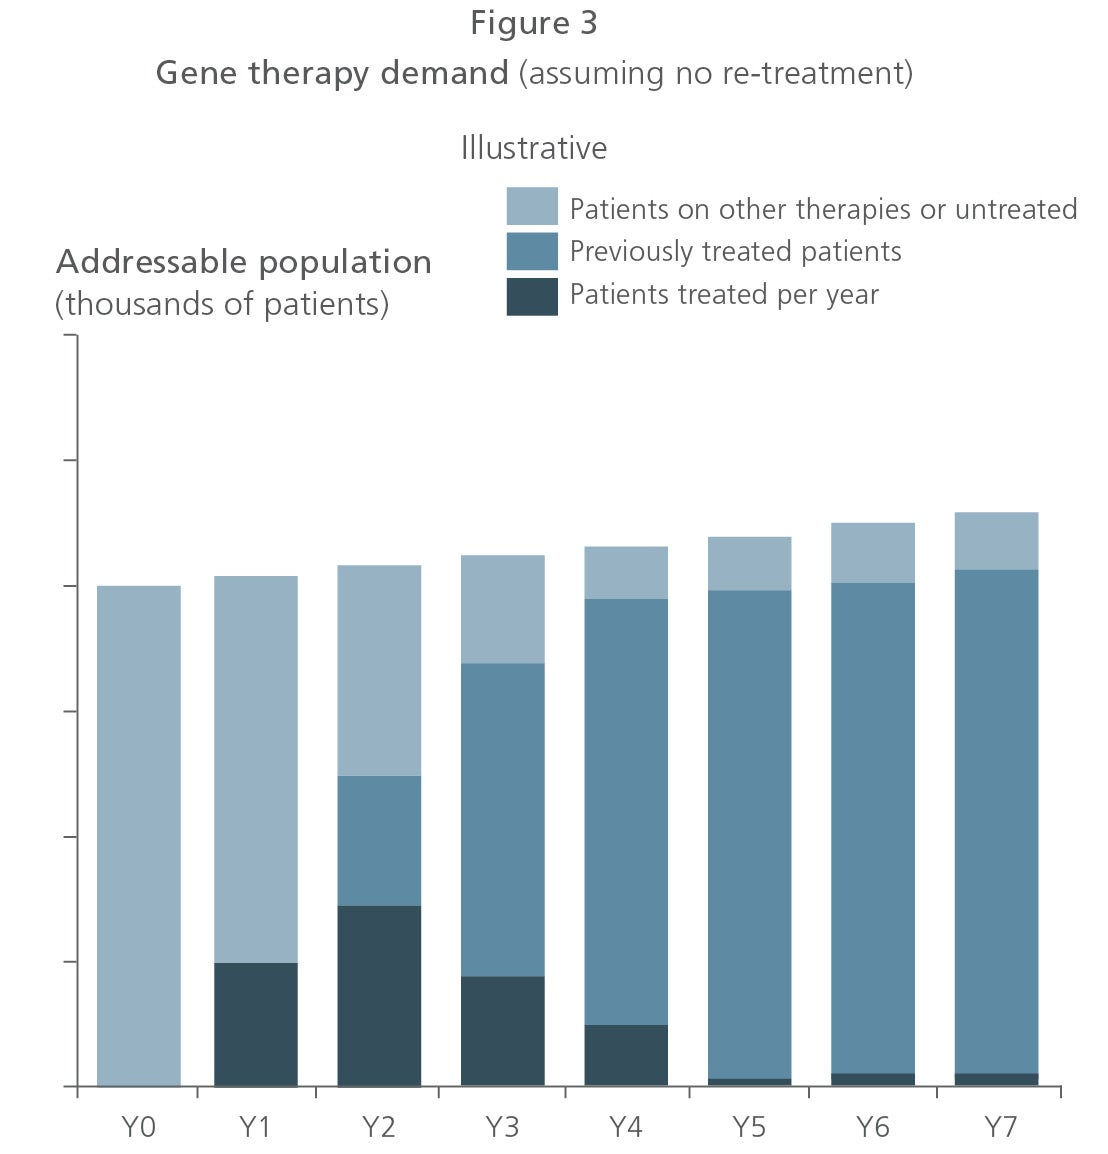 Commercial Challenges of Gene Therapy and Strategic Choices